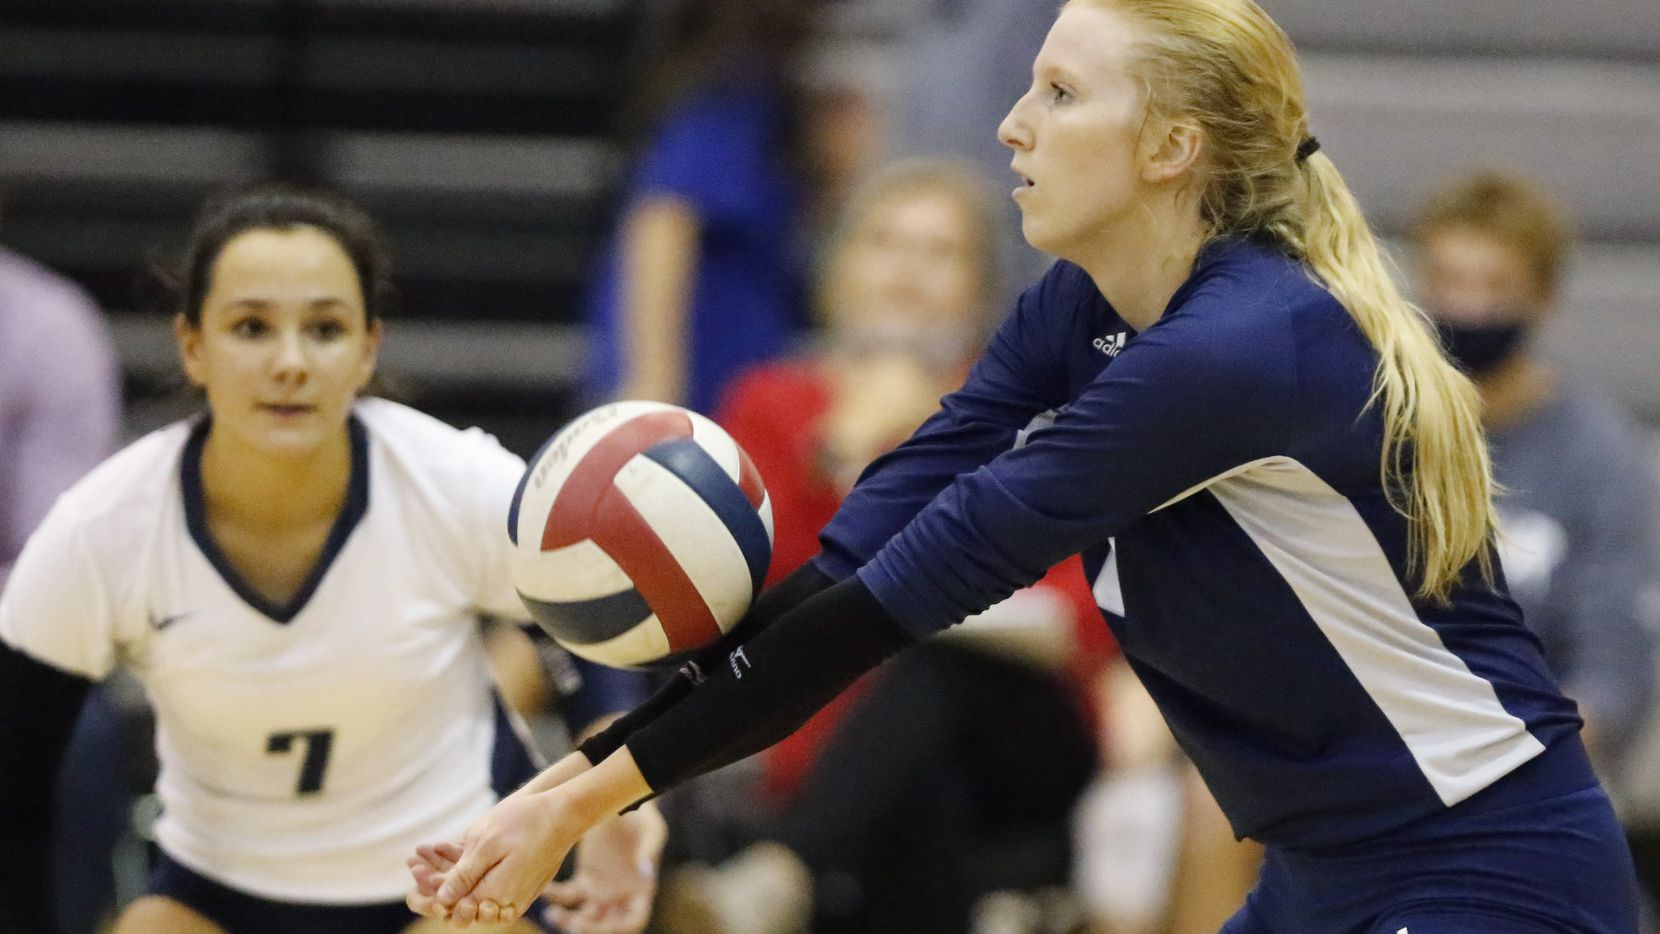 Flower Mound all-state outside hitter Kaylee Cox makes a pass during a match against Denton Guyer on September 22, 20. (Stewart F. House/Special Contributor)